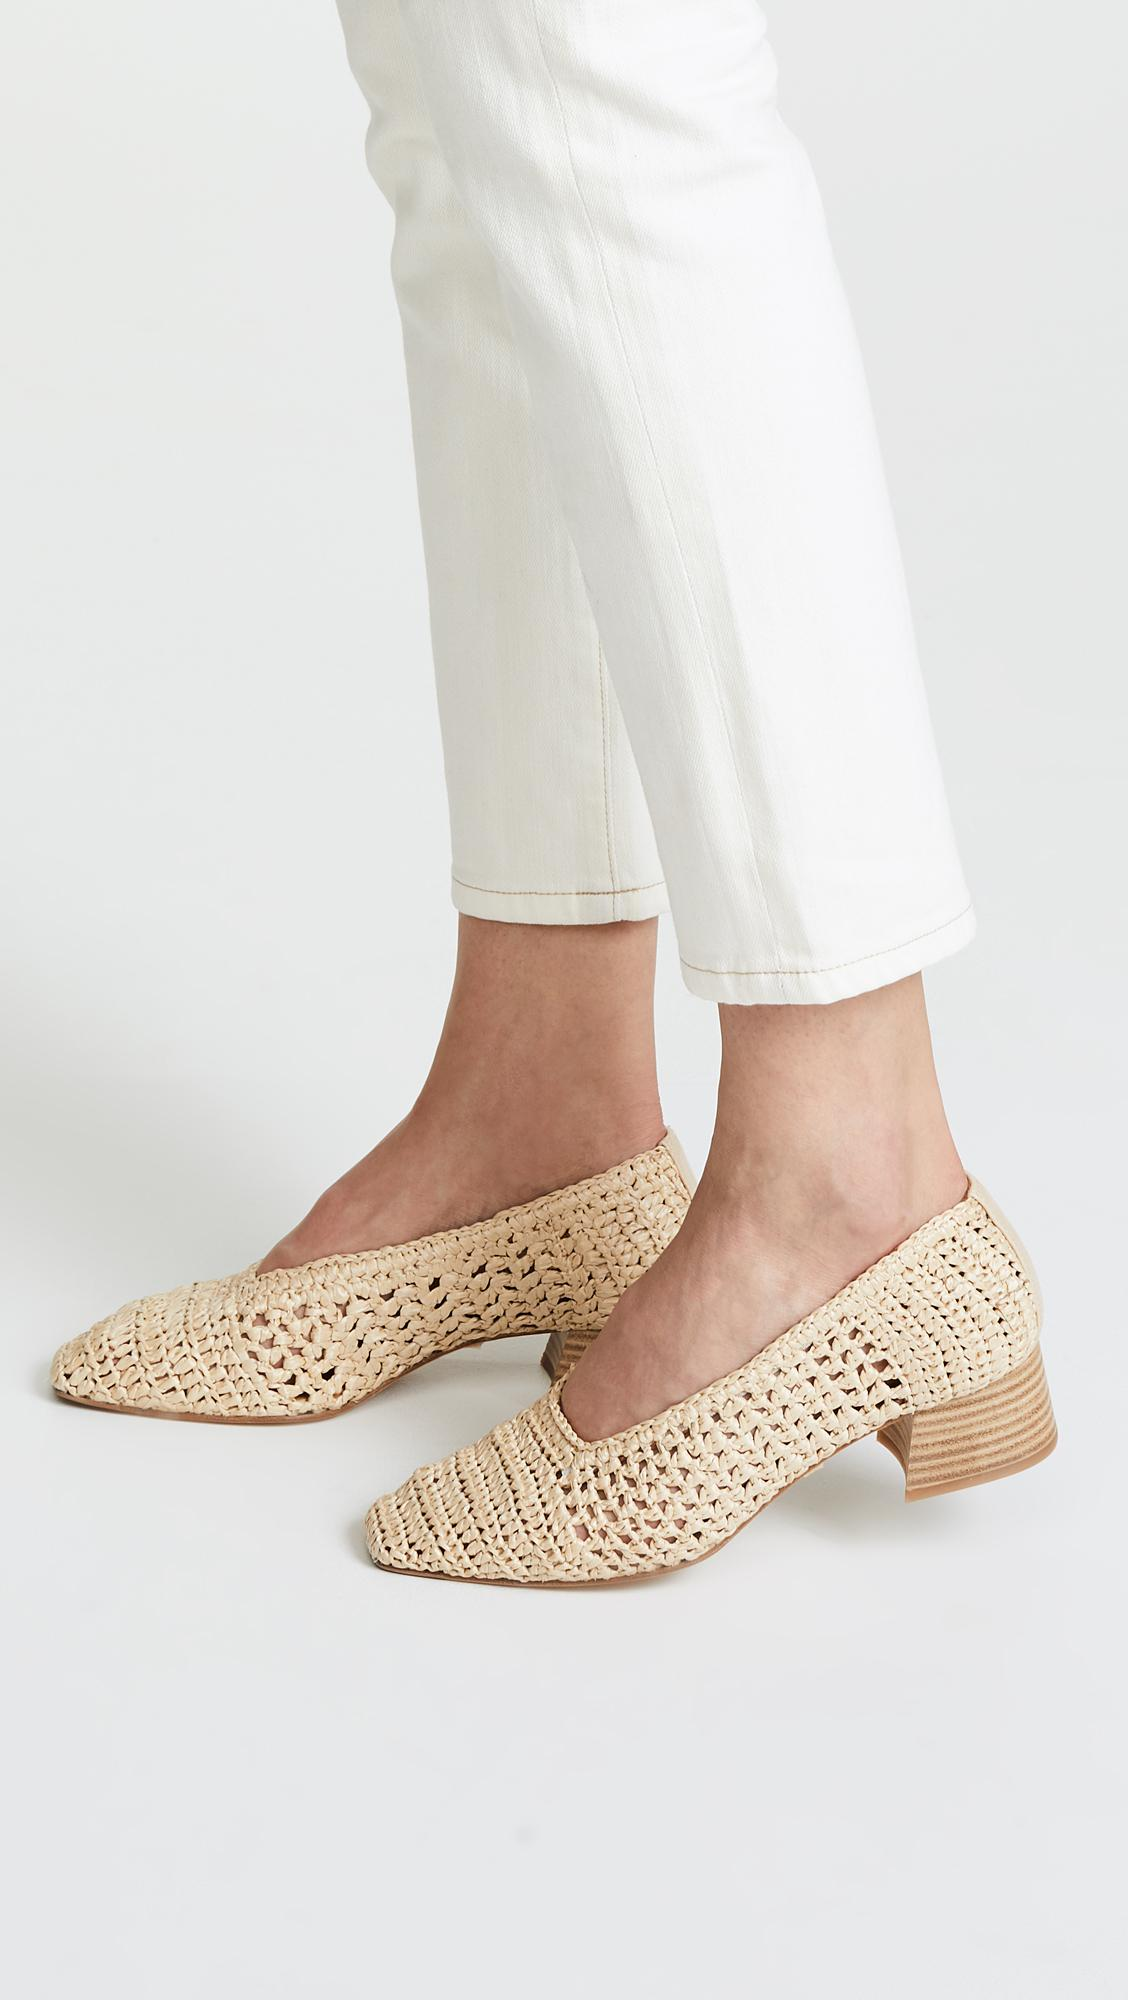 c42ee61b011 Miista - Natural Noa Woven Pumps - Lyst. View fullscreen